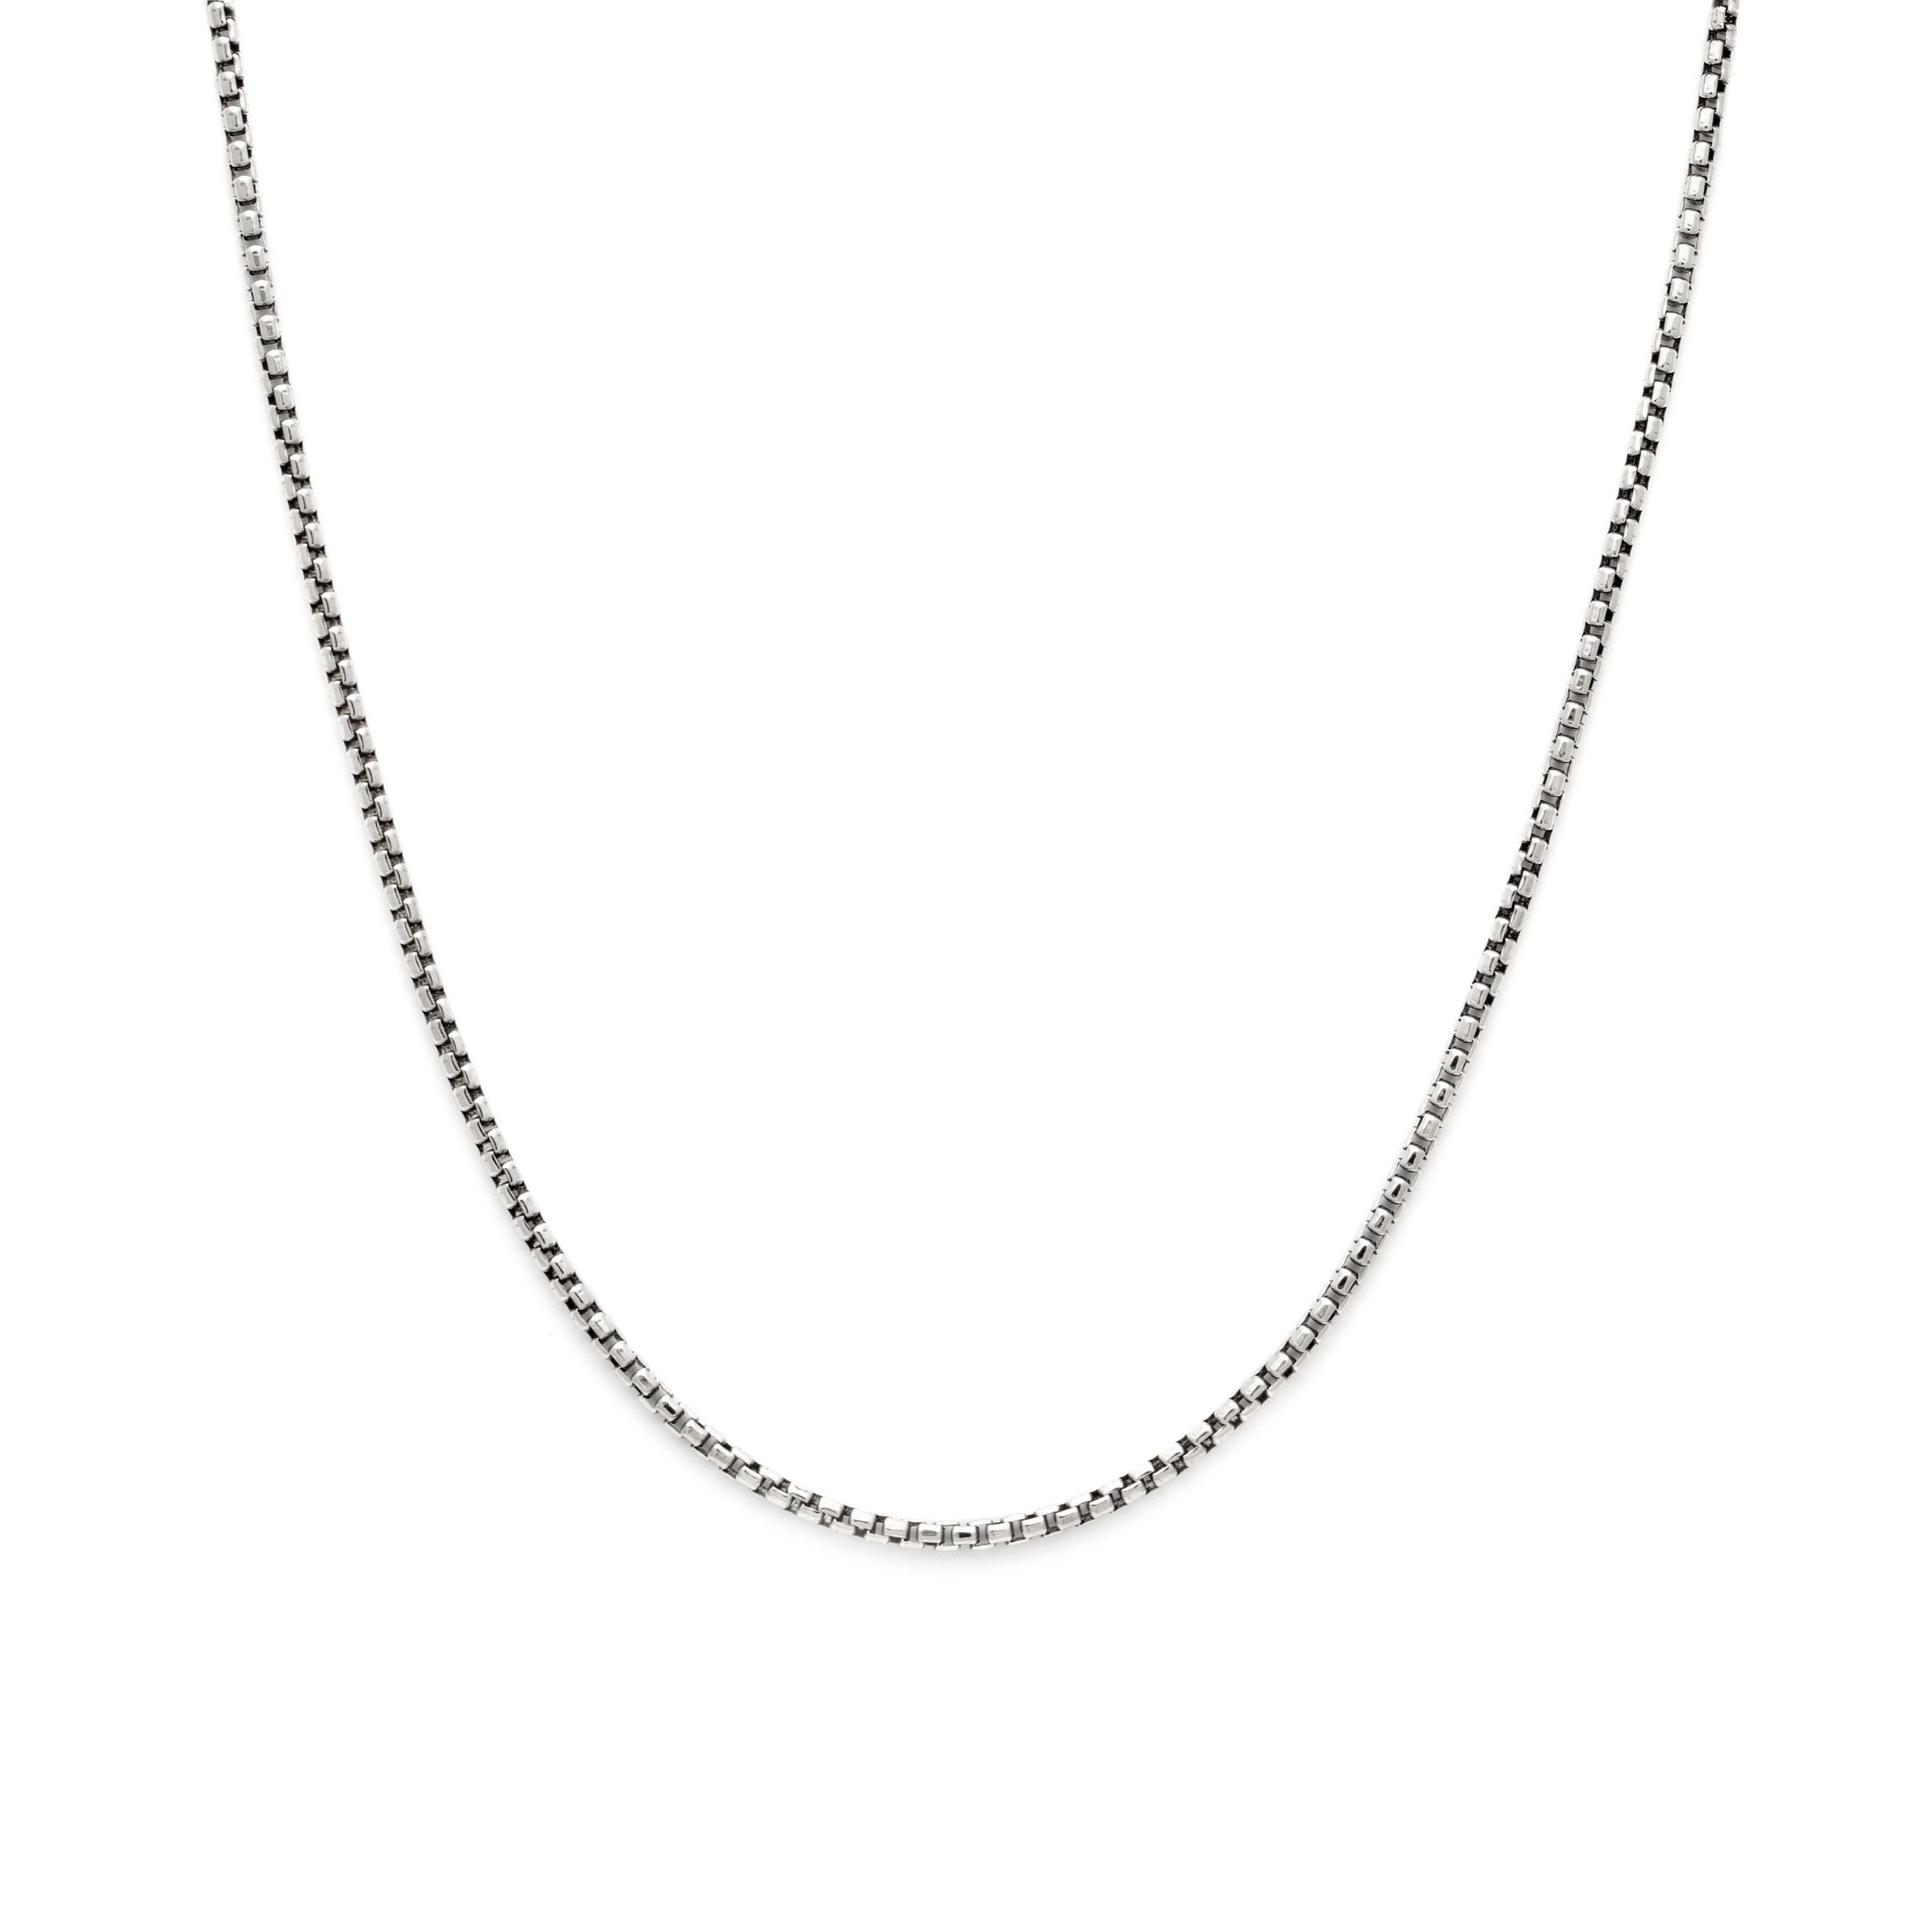 Thick Box Chain - Oxidized Sterling Silver